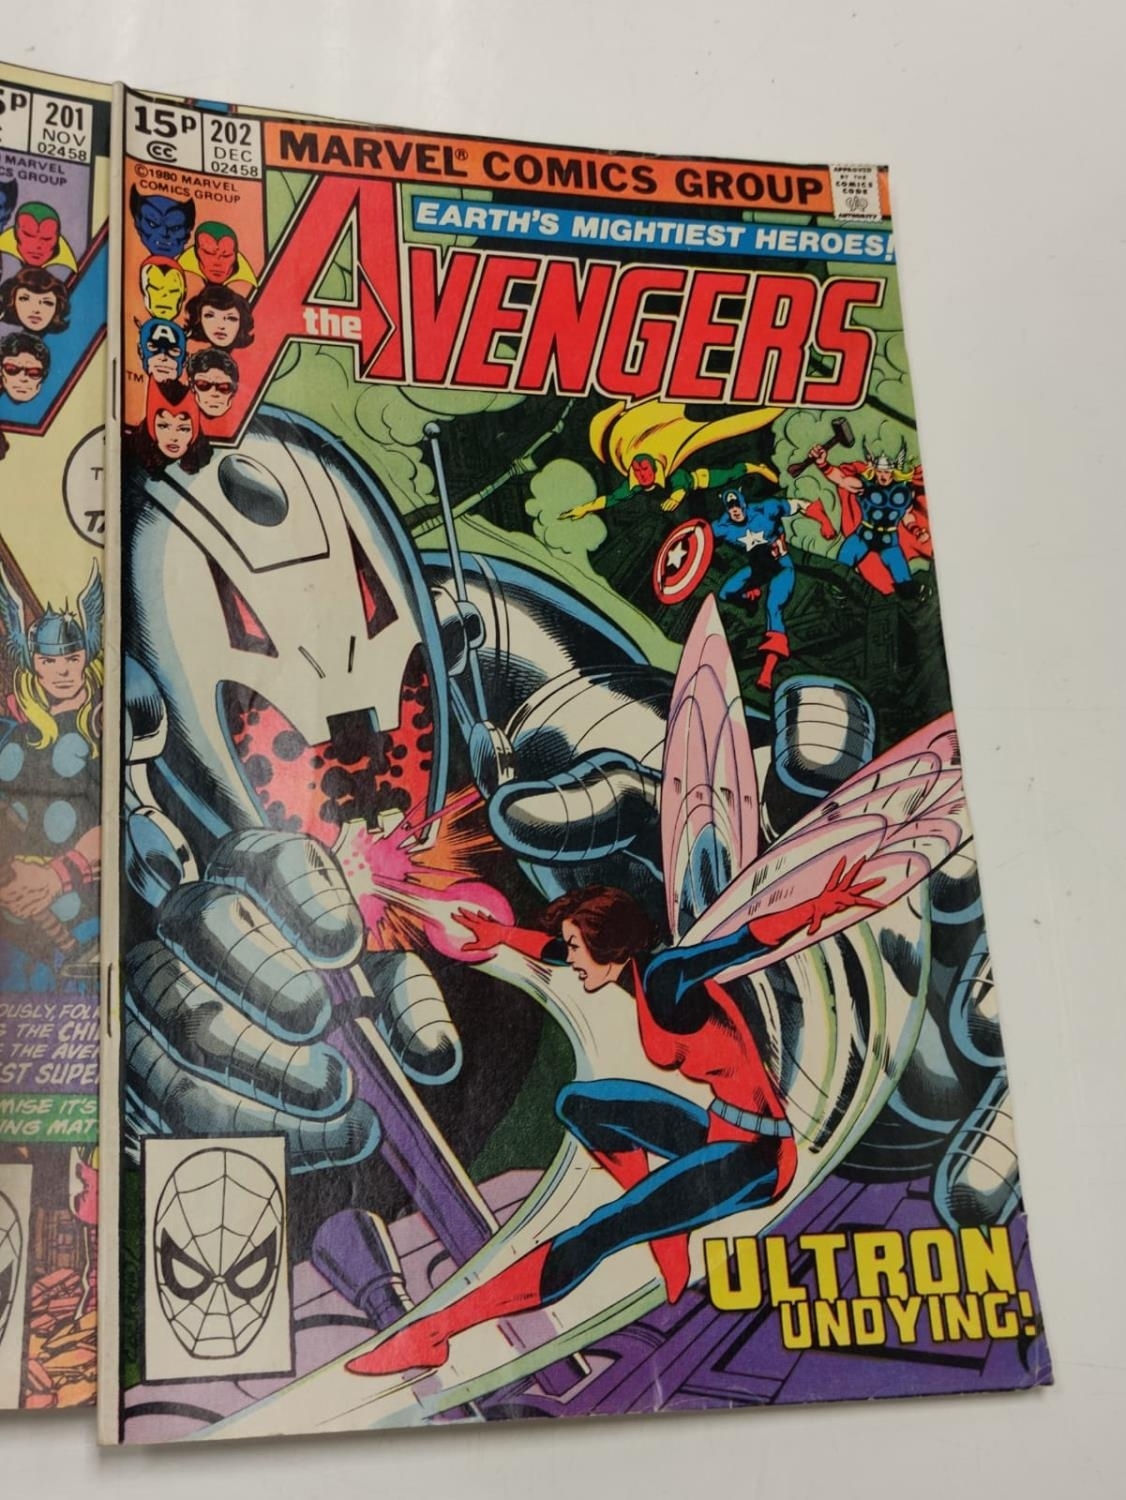 17 editions of Vintage Marvel 'The Avengers' comics in very good condition. - Image 12 of 12